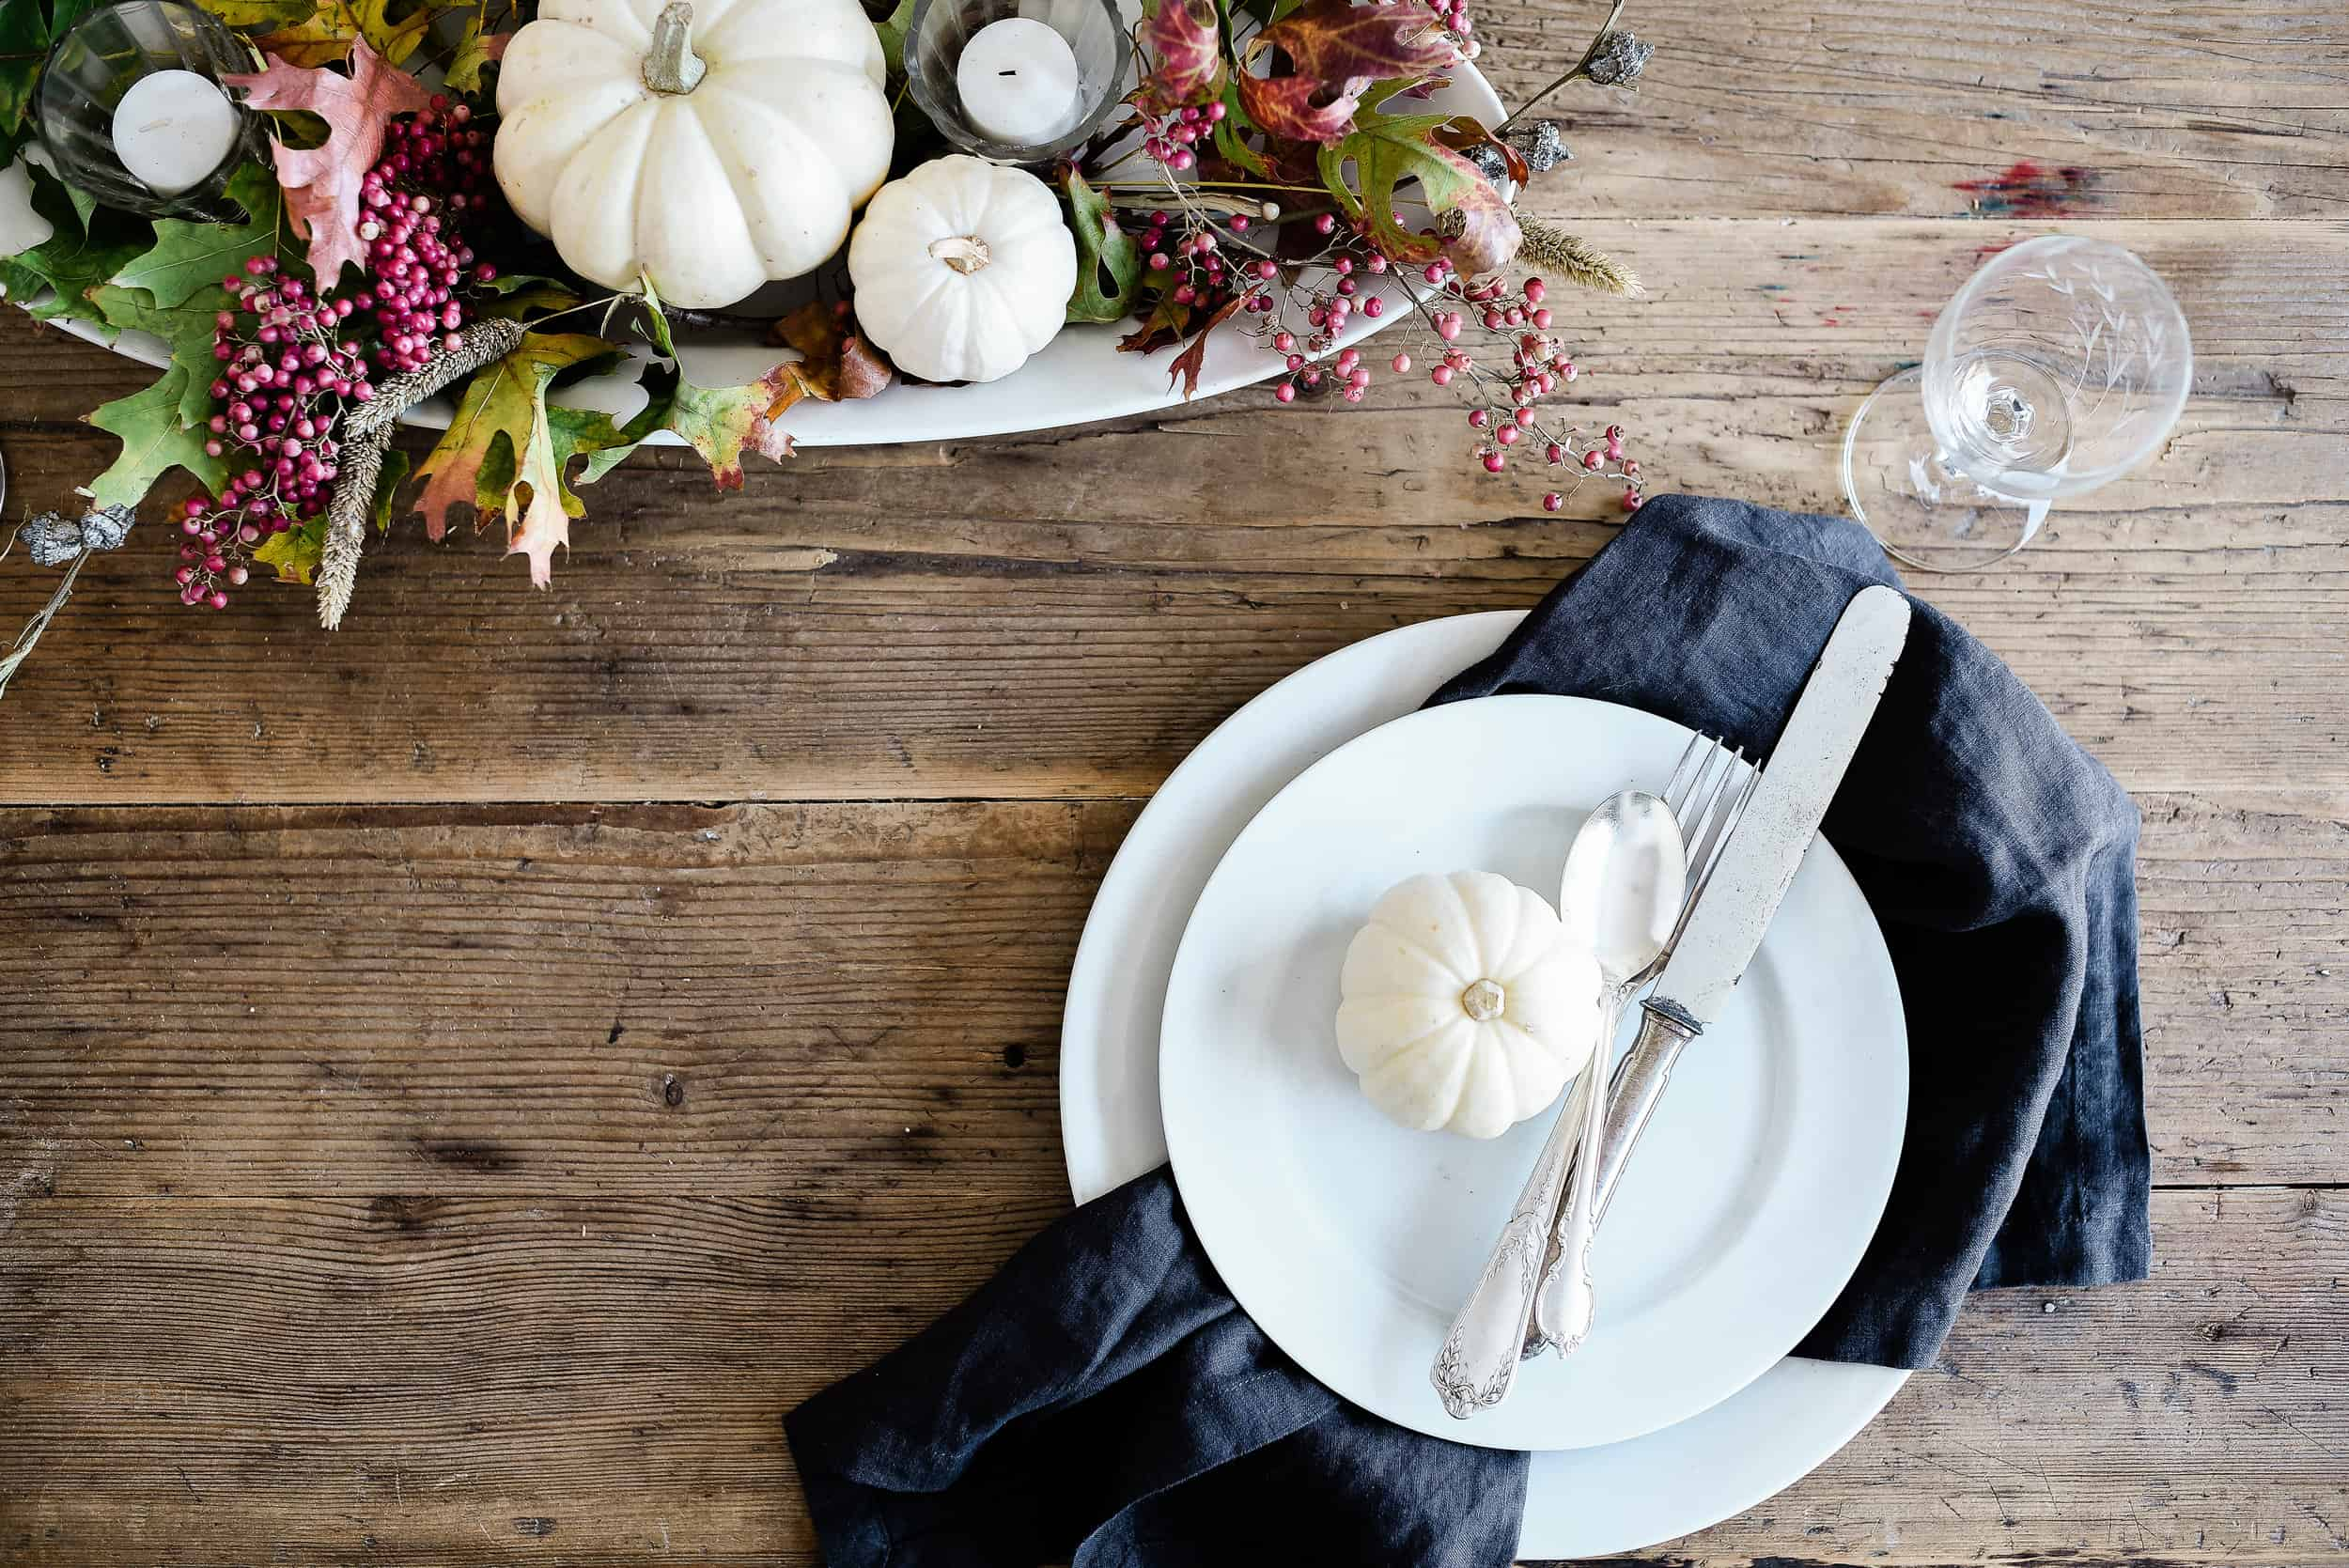 Thanksgiving is a time to celebrate all that we are thankful for with food, family, and friends! Dress up your table this year with some of these beautiful Thanksgiving tablescape ideas!